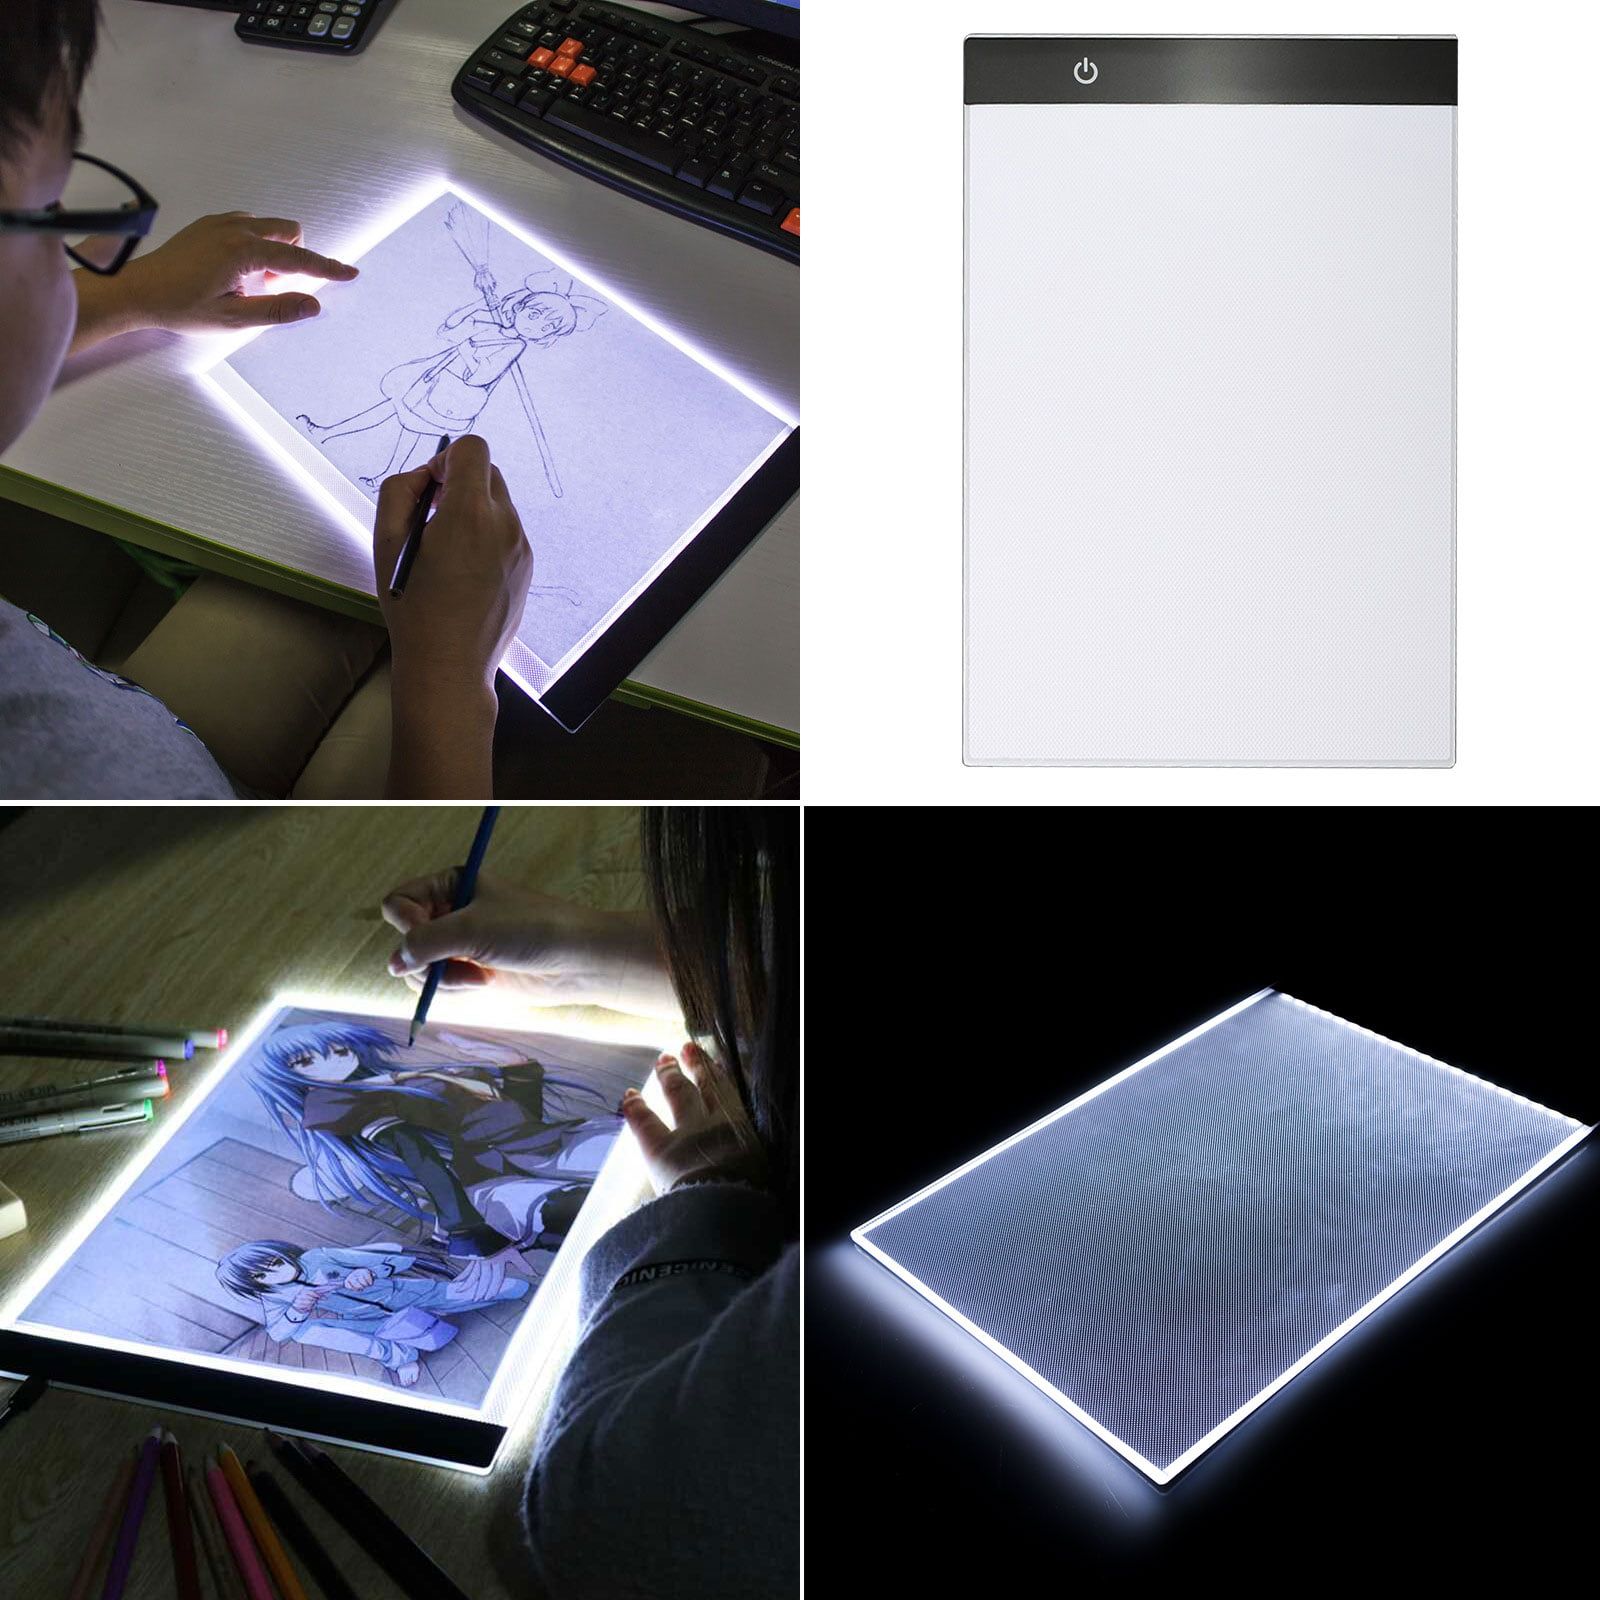 A4 Led Tracing Light Box Slim Portable Led Light Pad Tracer Tsv Usb Powered Drawing Copy Board Tattoo Tracing Led Light Table For Artists Drawing Animation Sketching Stenciling X Ray Viewing Walmart Com